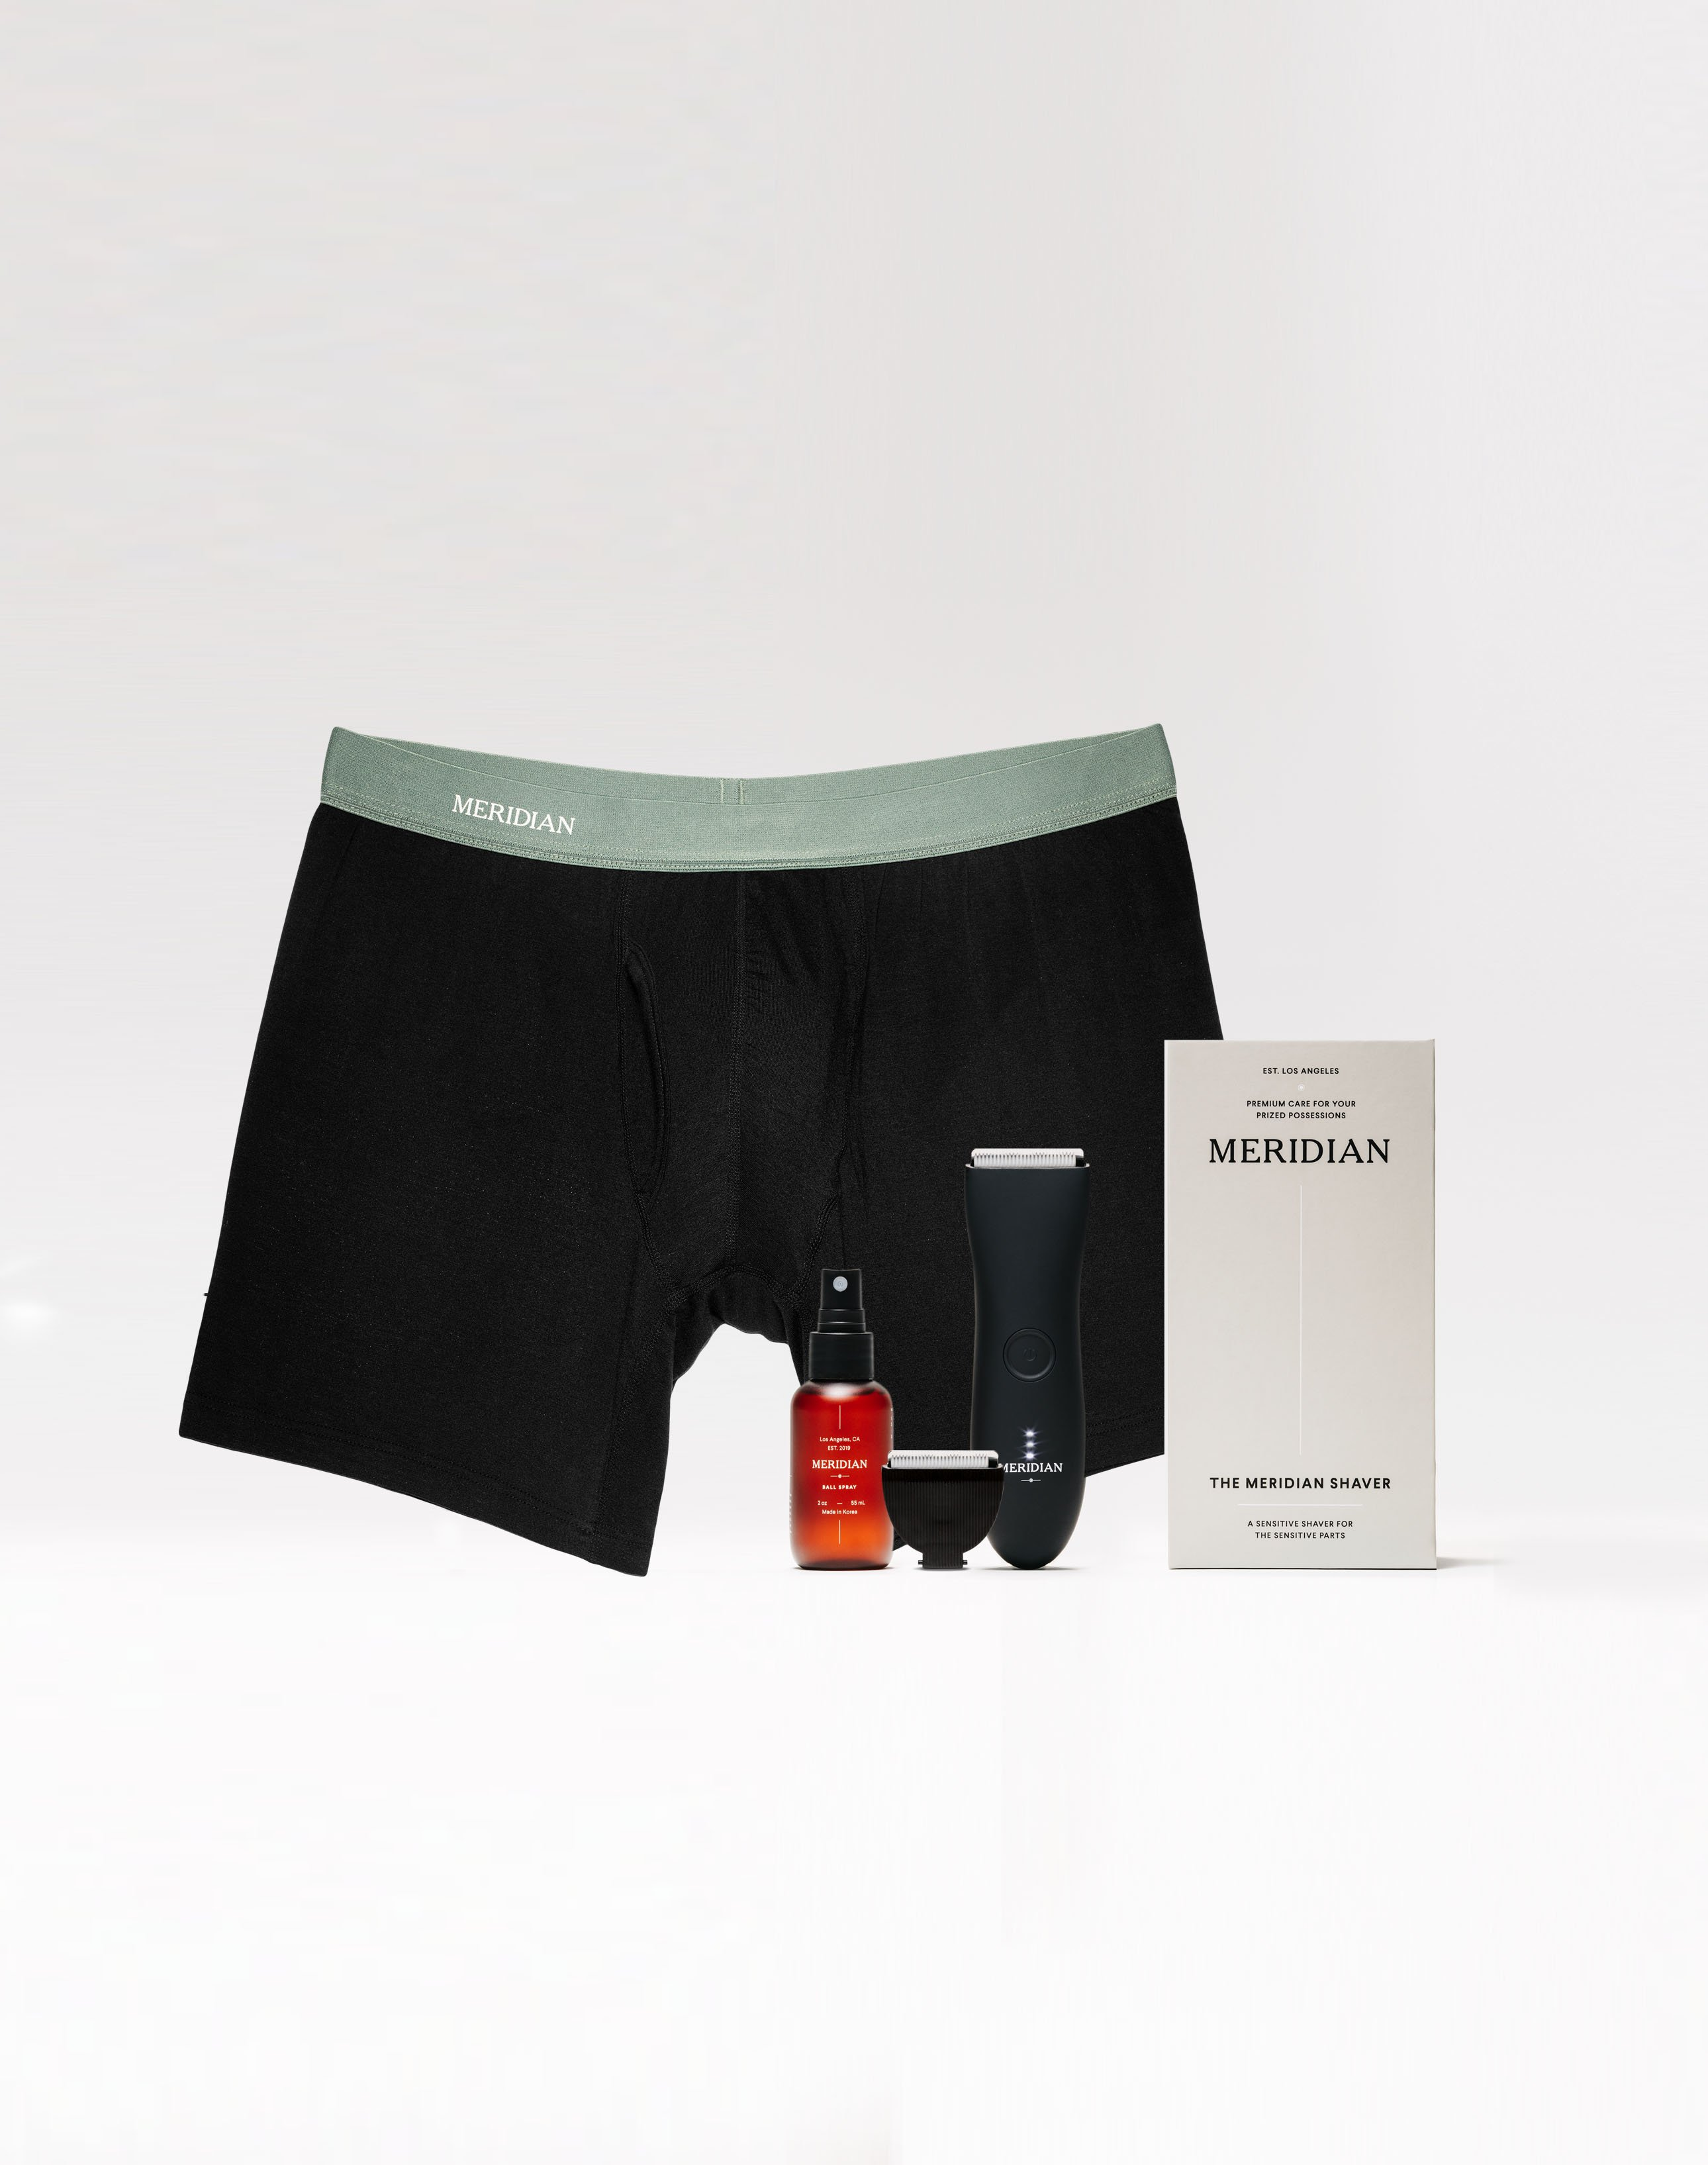 Meridian Grooming's Comfort Package, with underwear, body trimmer and ball spray, best body groomers